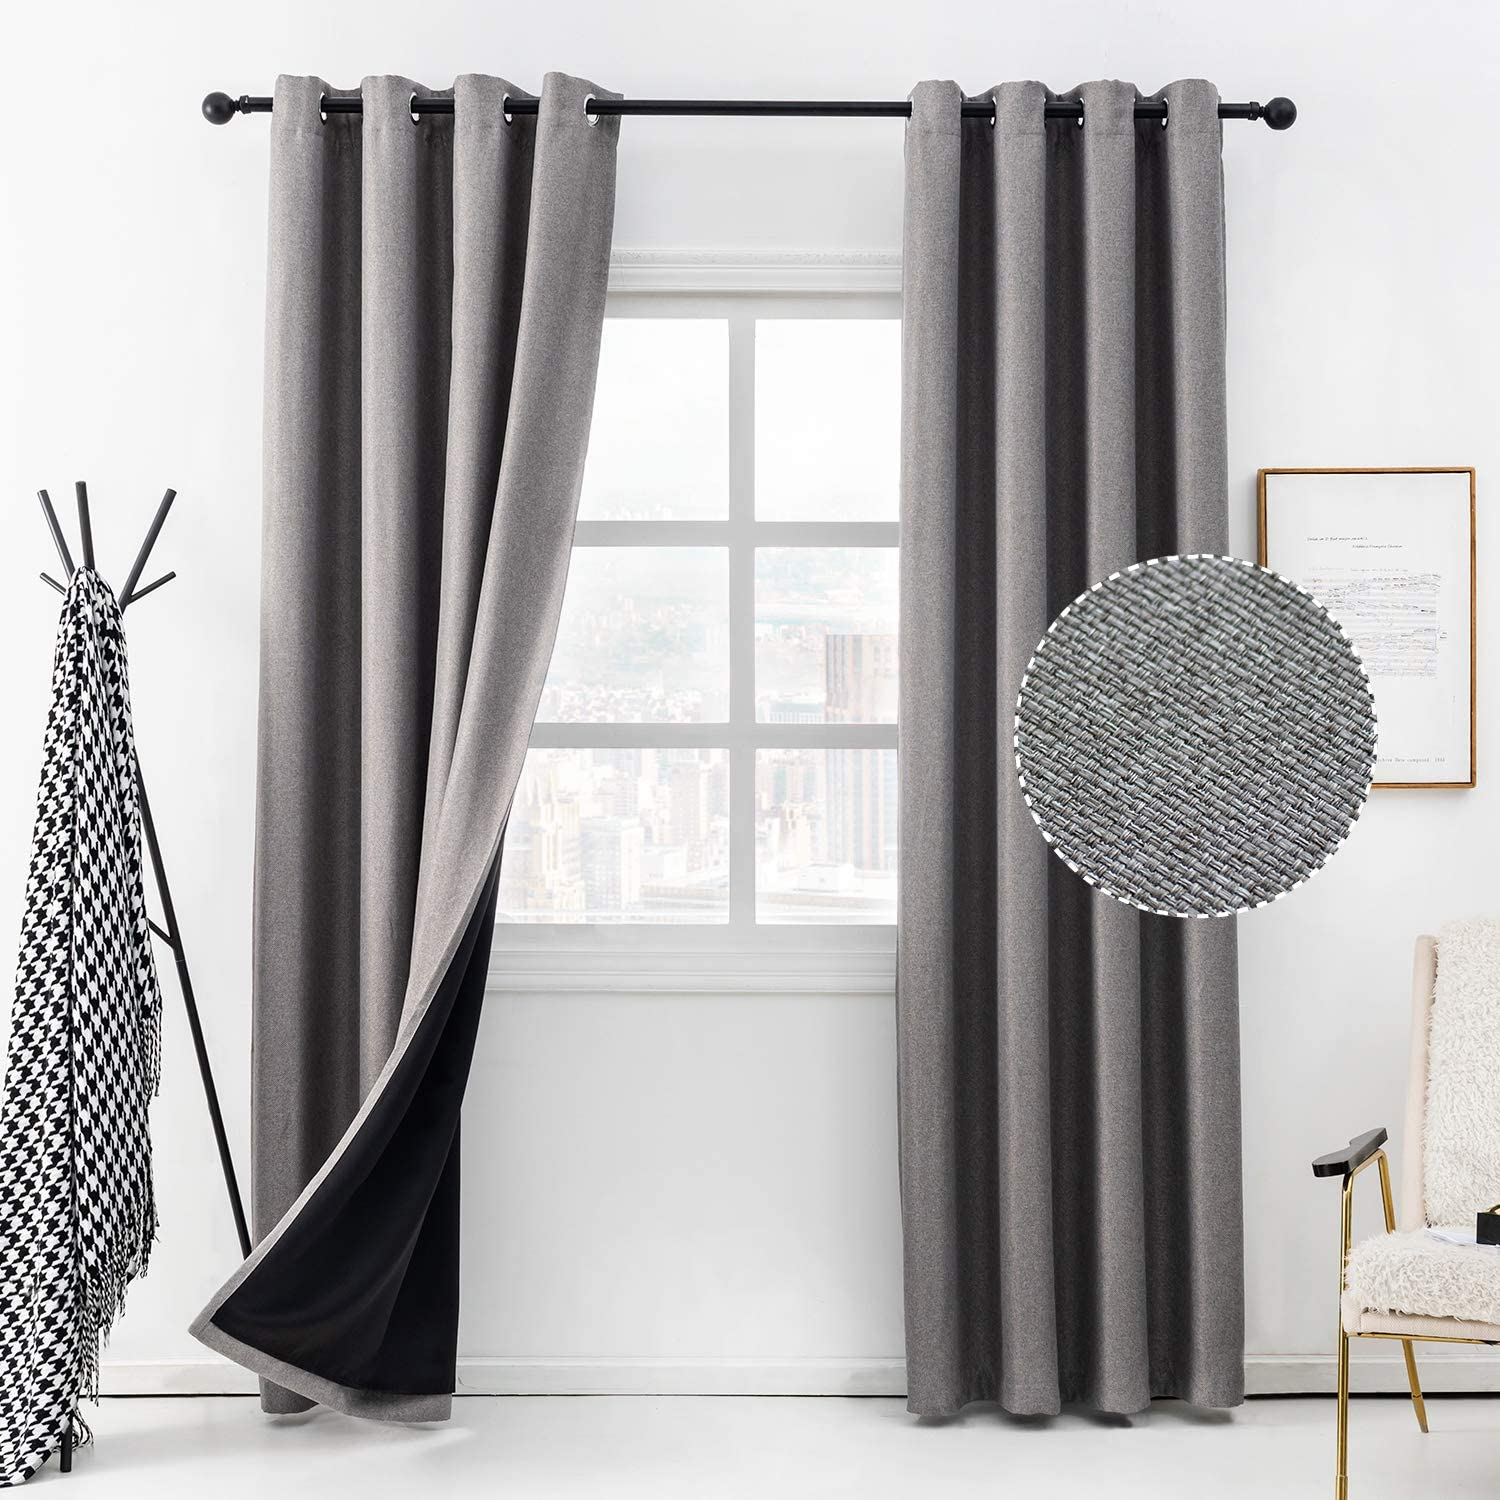 Anjee Linen Curtain for Living Room 95 Inches 100% Blackout Burlap Curtain Total Room Darkening Window Drapes Noise Reduction Thermal Insulated Drapery Panels Home Decor,Grey 52x95 Inches